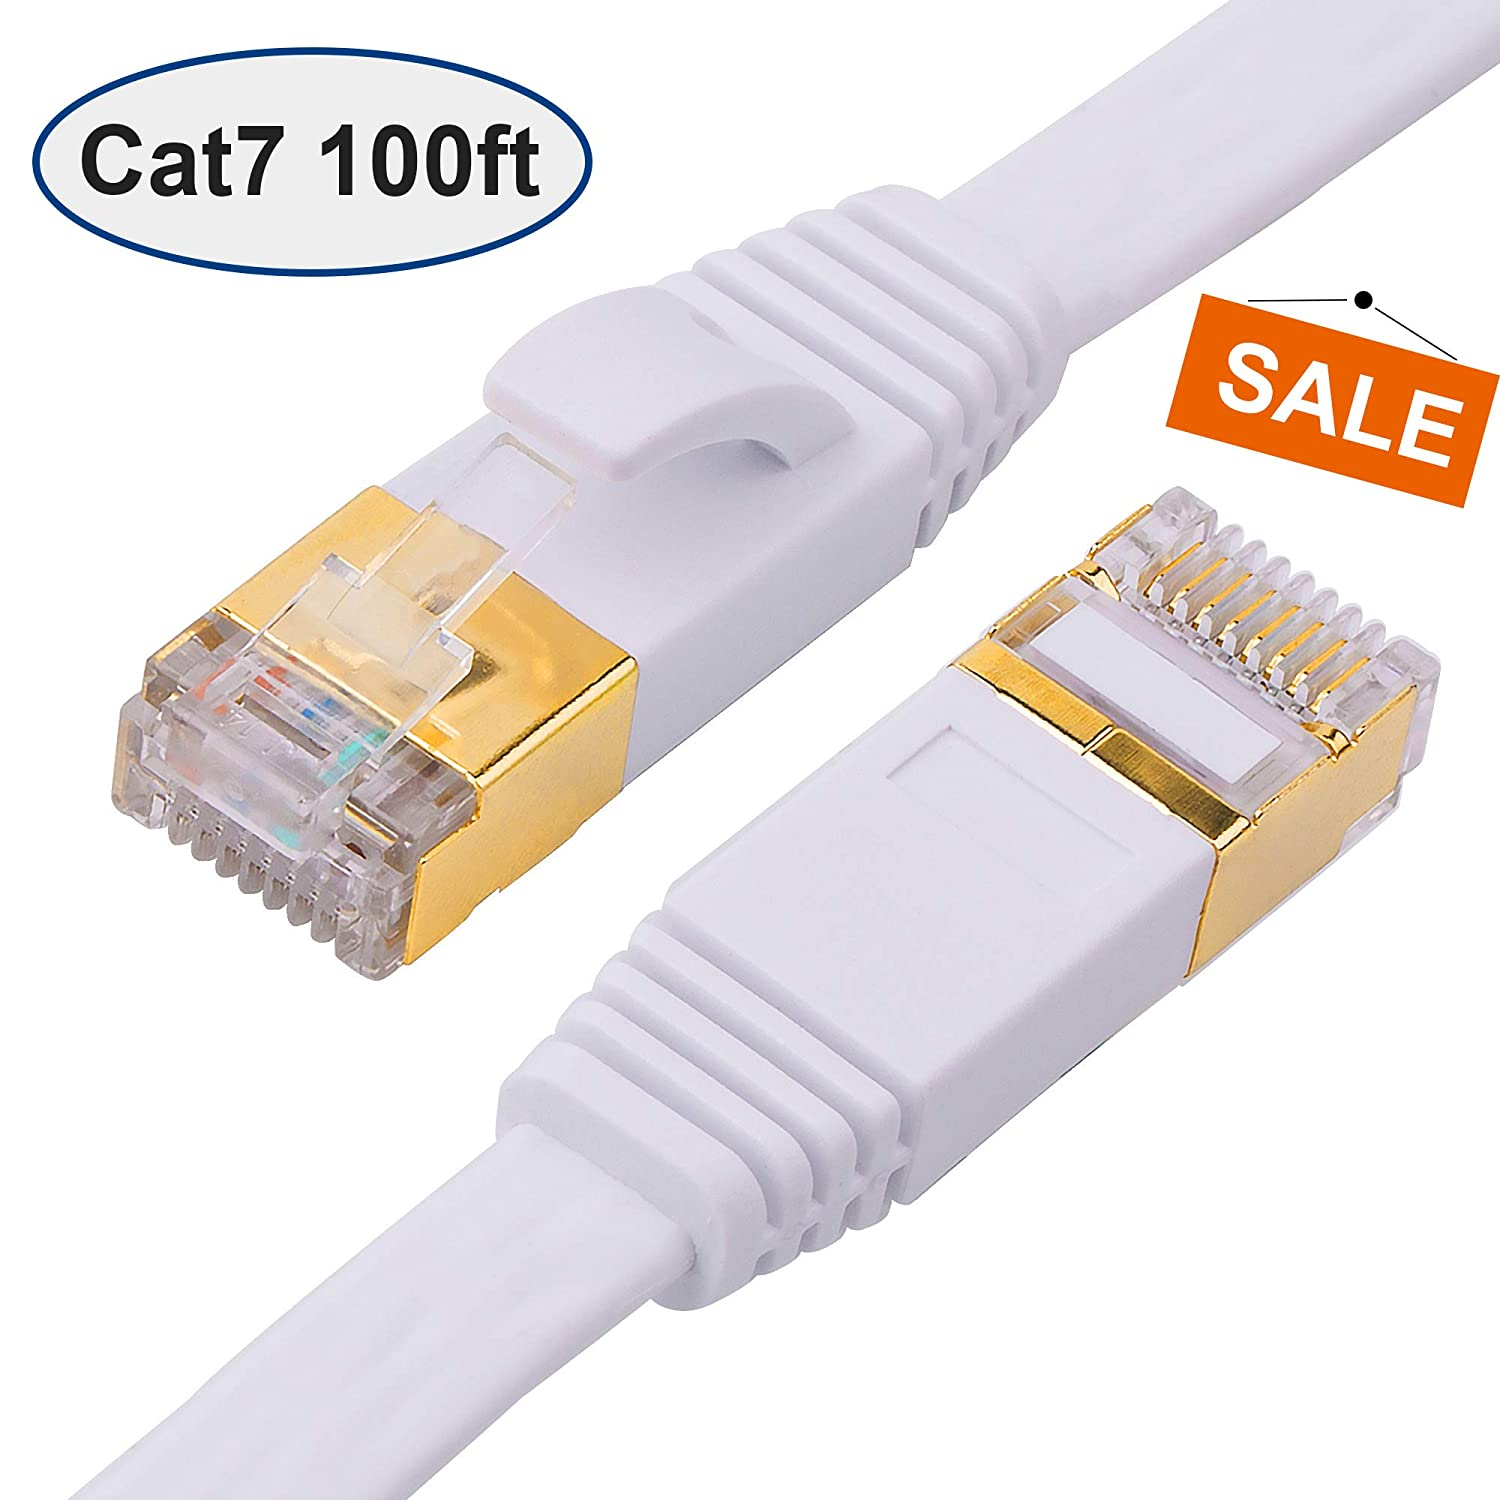 Cable Diagram Besides Cat5e Cable Color Code Additionally Cat 5 Ether